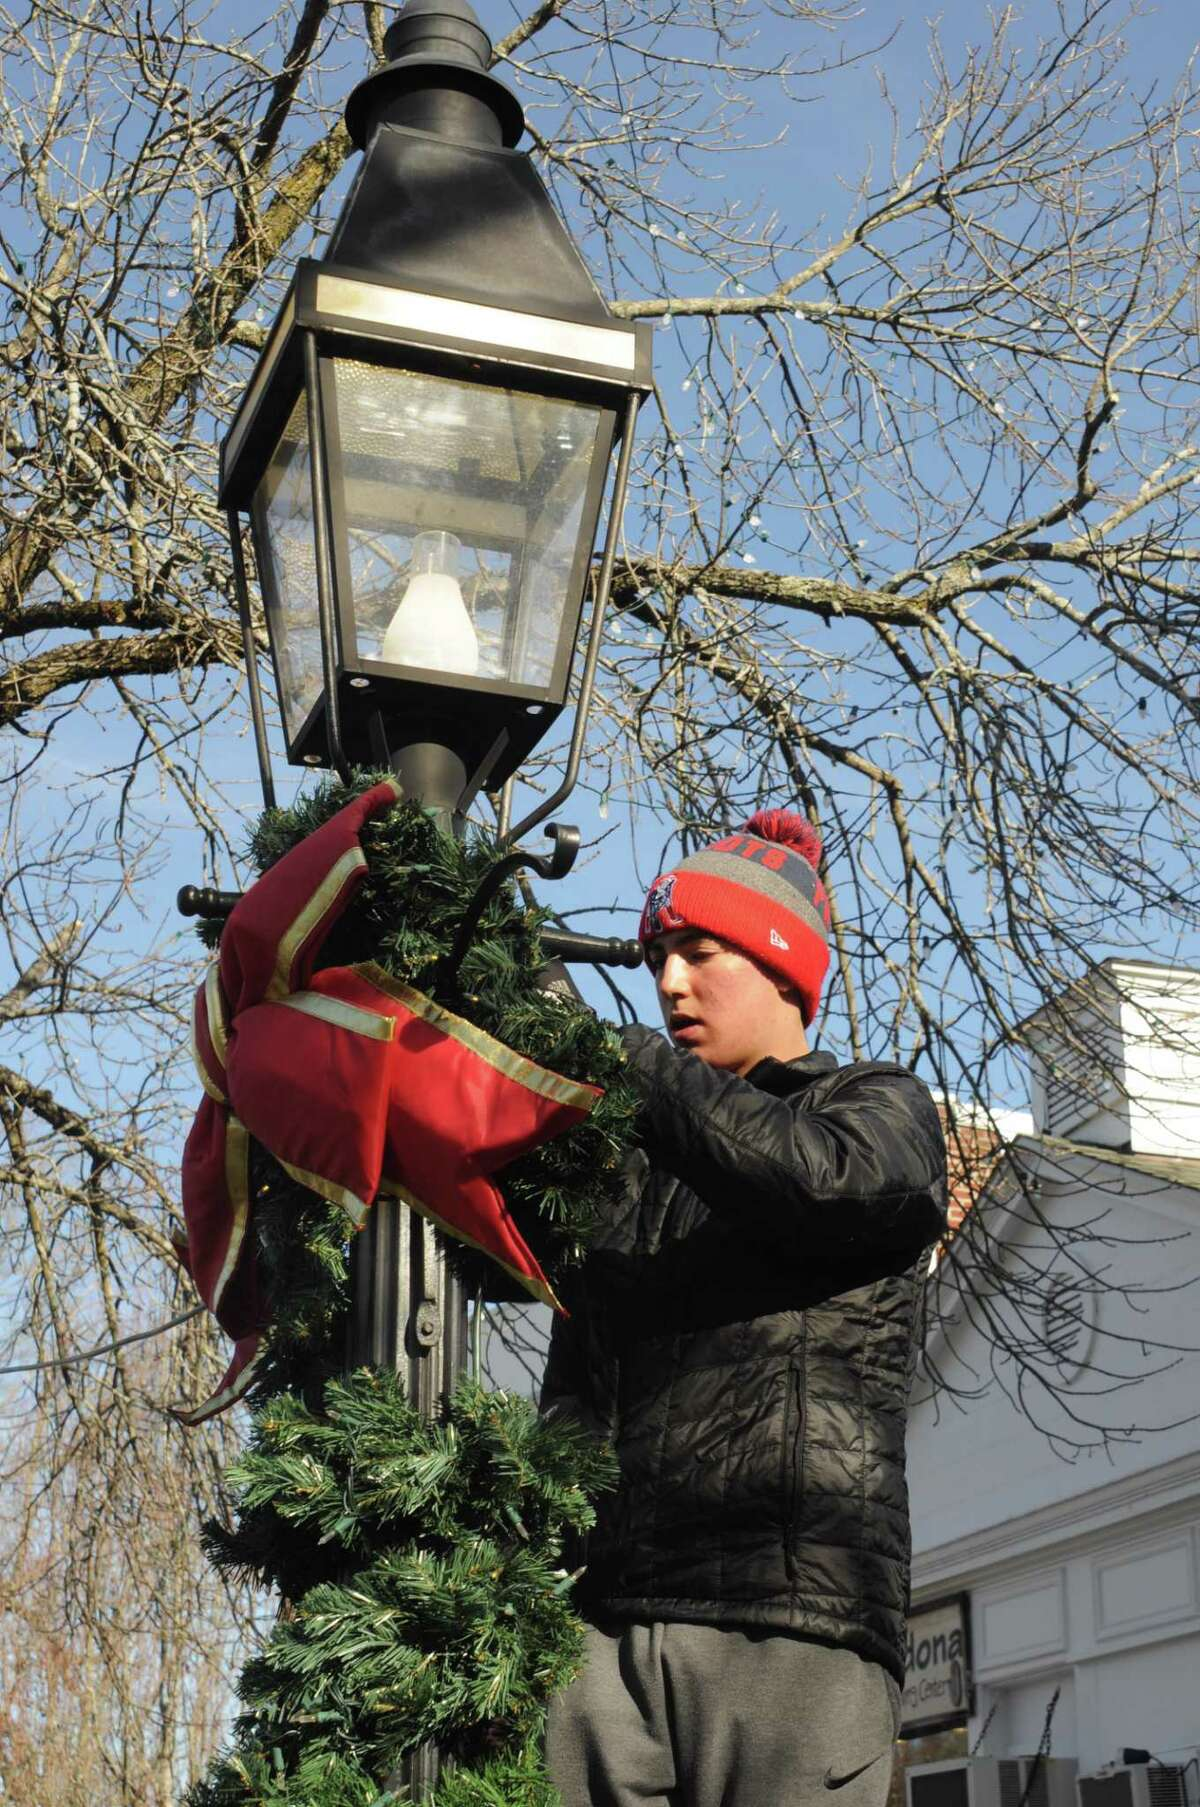 Will Hanna was one of the players from the American Legion baseball team out decorating village lampposts Saturday, Nov. 23, in a joint effort with veterans from American Legion Post 78.